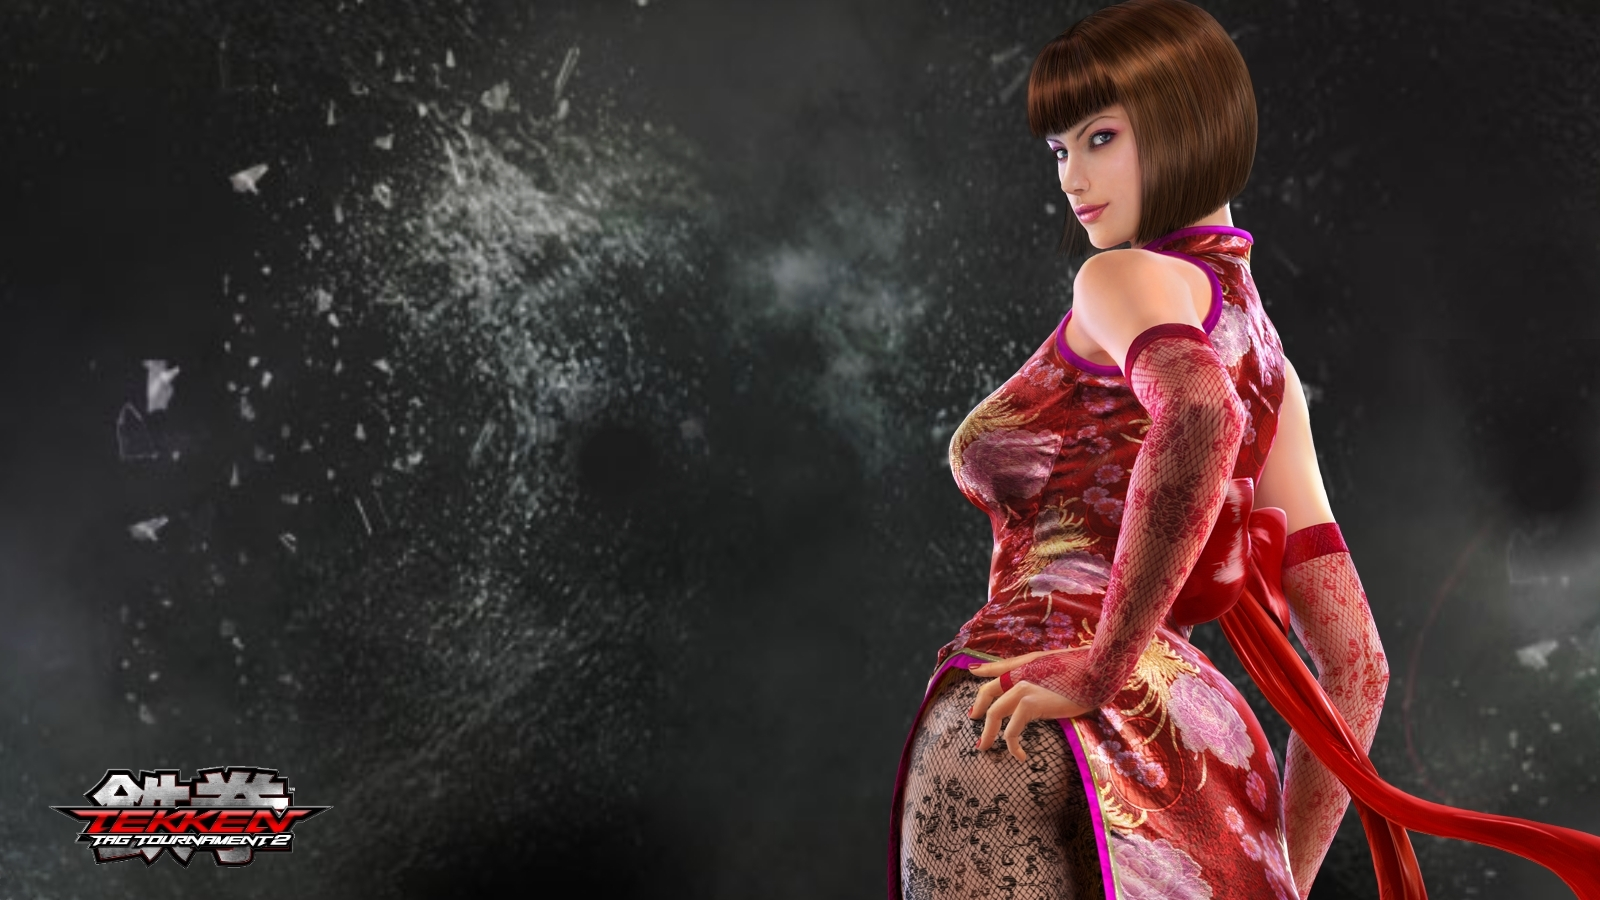 http://1.bp.blogspot.com/-Q7lWwnJLtu0/UGswEzdIb8I/AAAAAAAARHA/PZfvWopViC8/s1600/Anna_Williams_Tekken_Tag_Tournament_2_Wallpaper.jpg